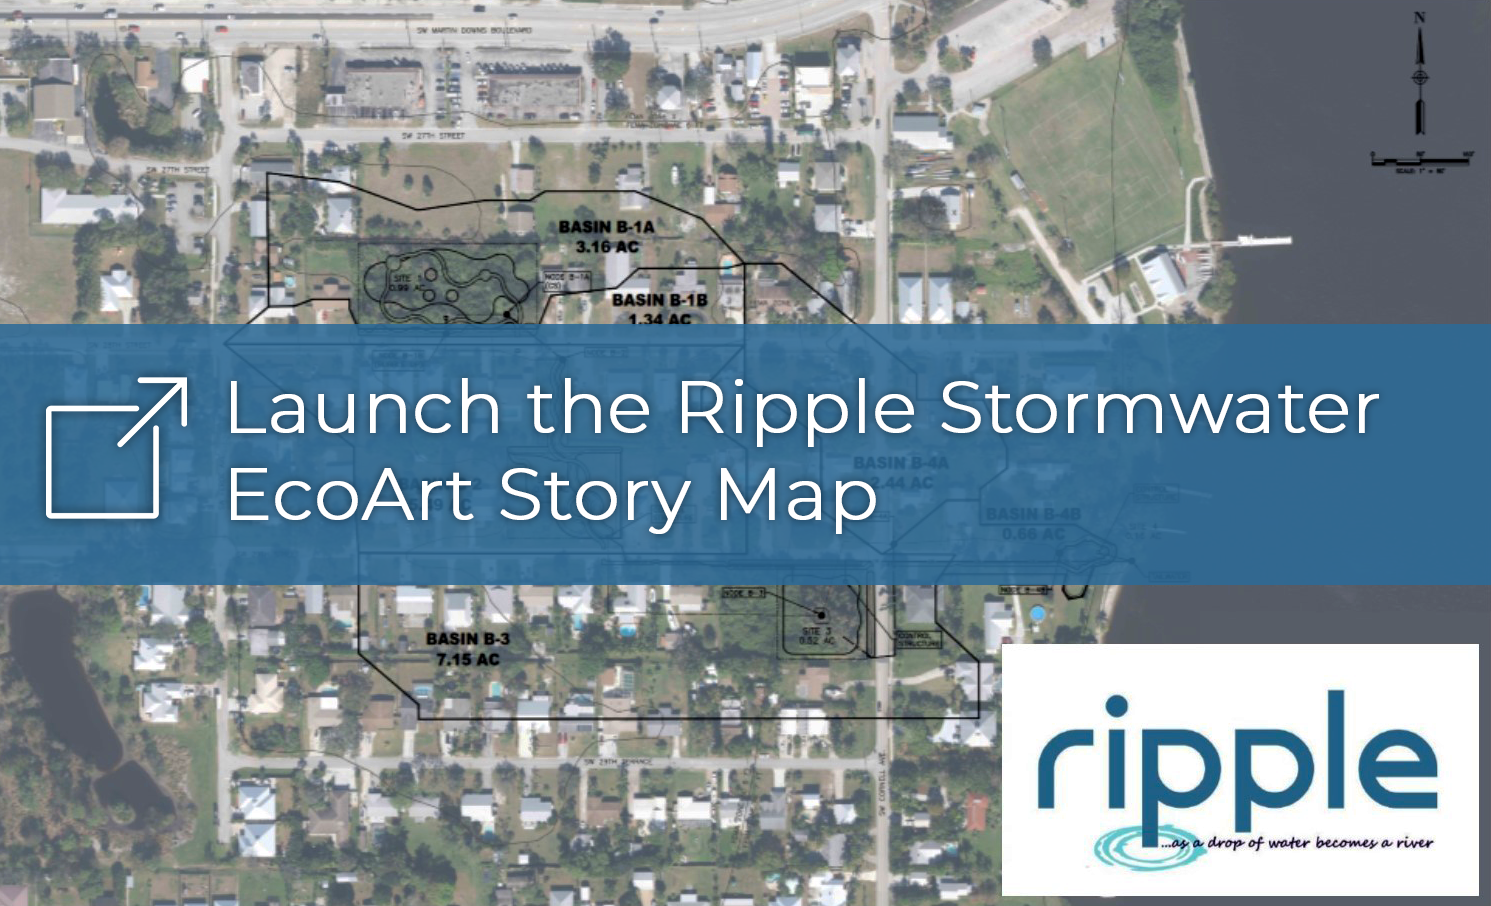 Launch the Ripple Stormwater EcoArt Story Map